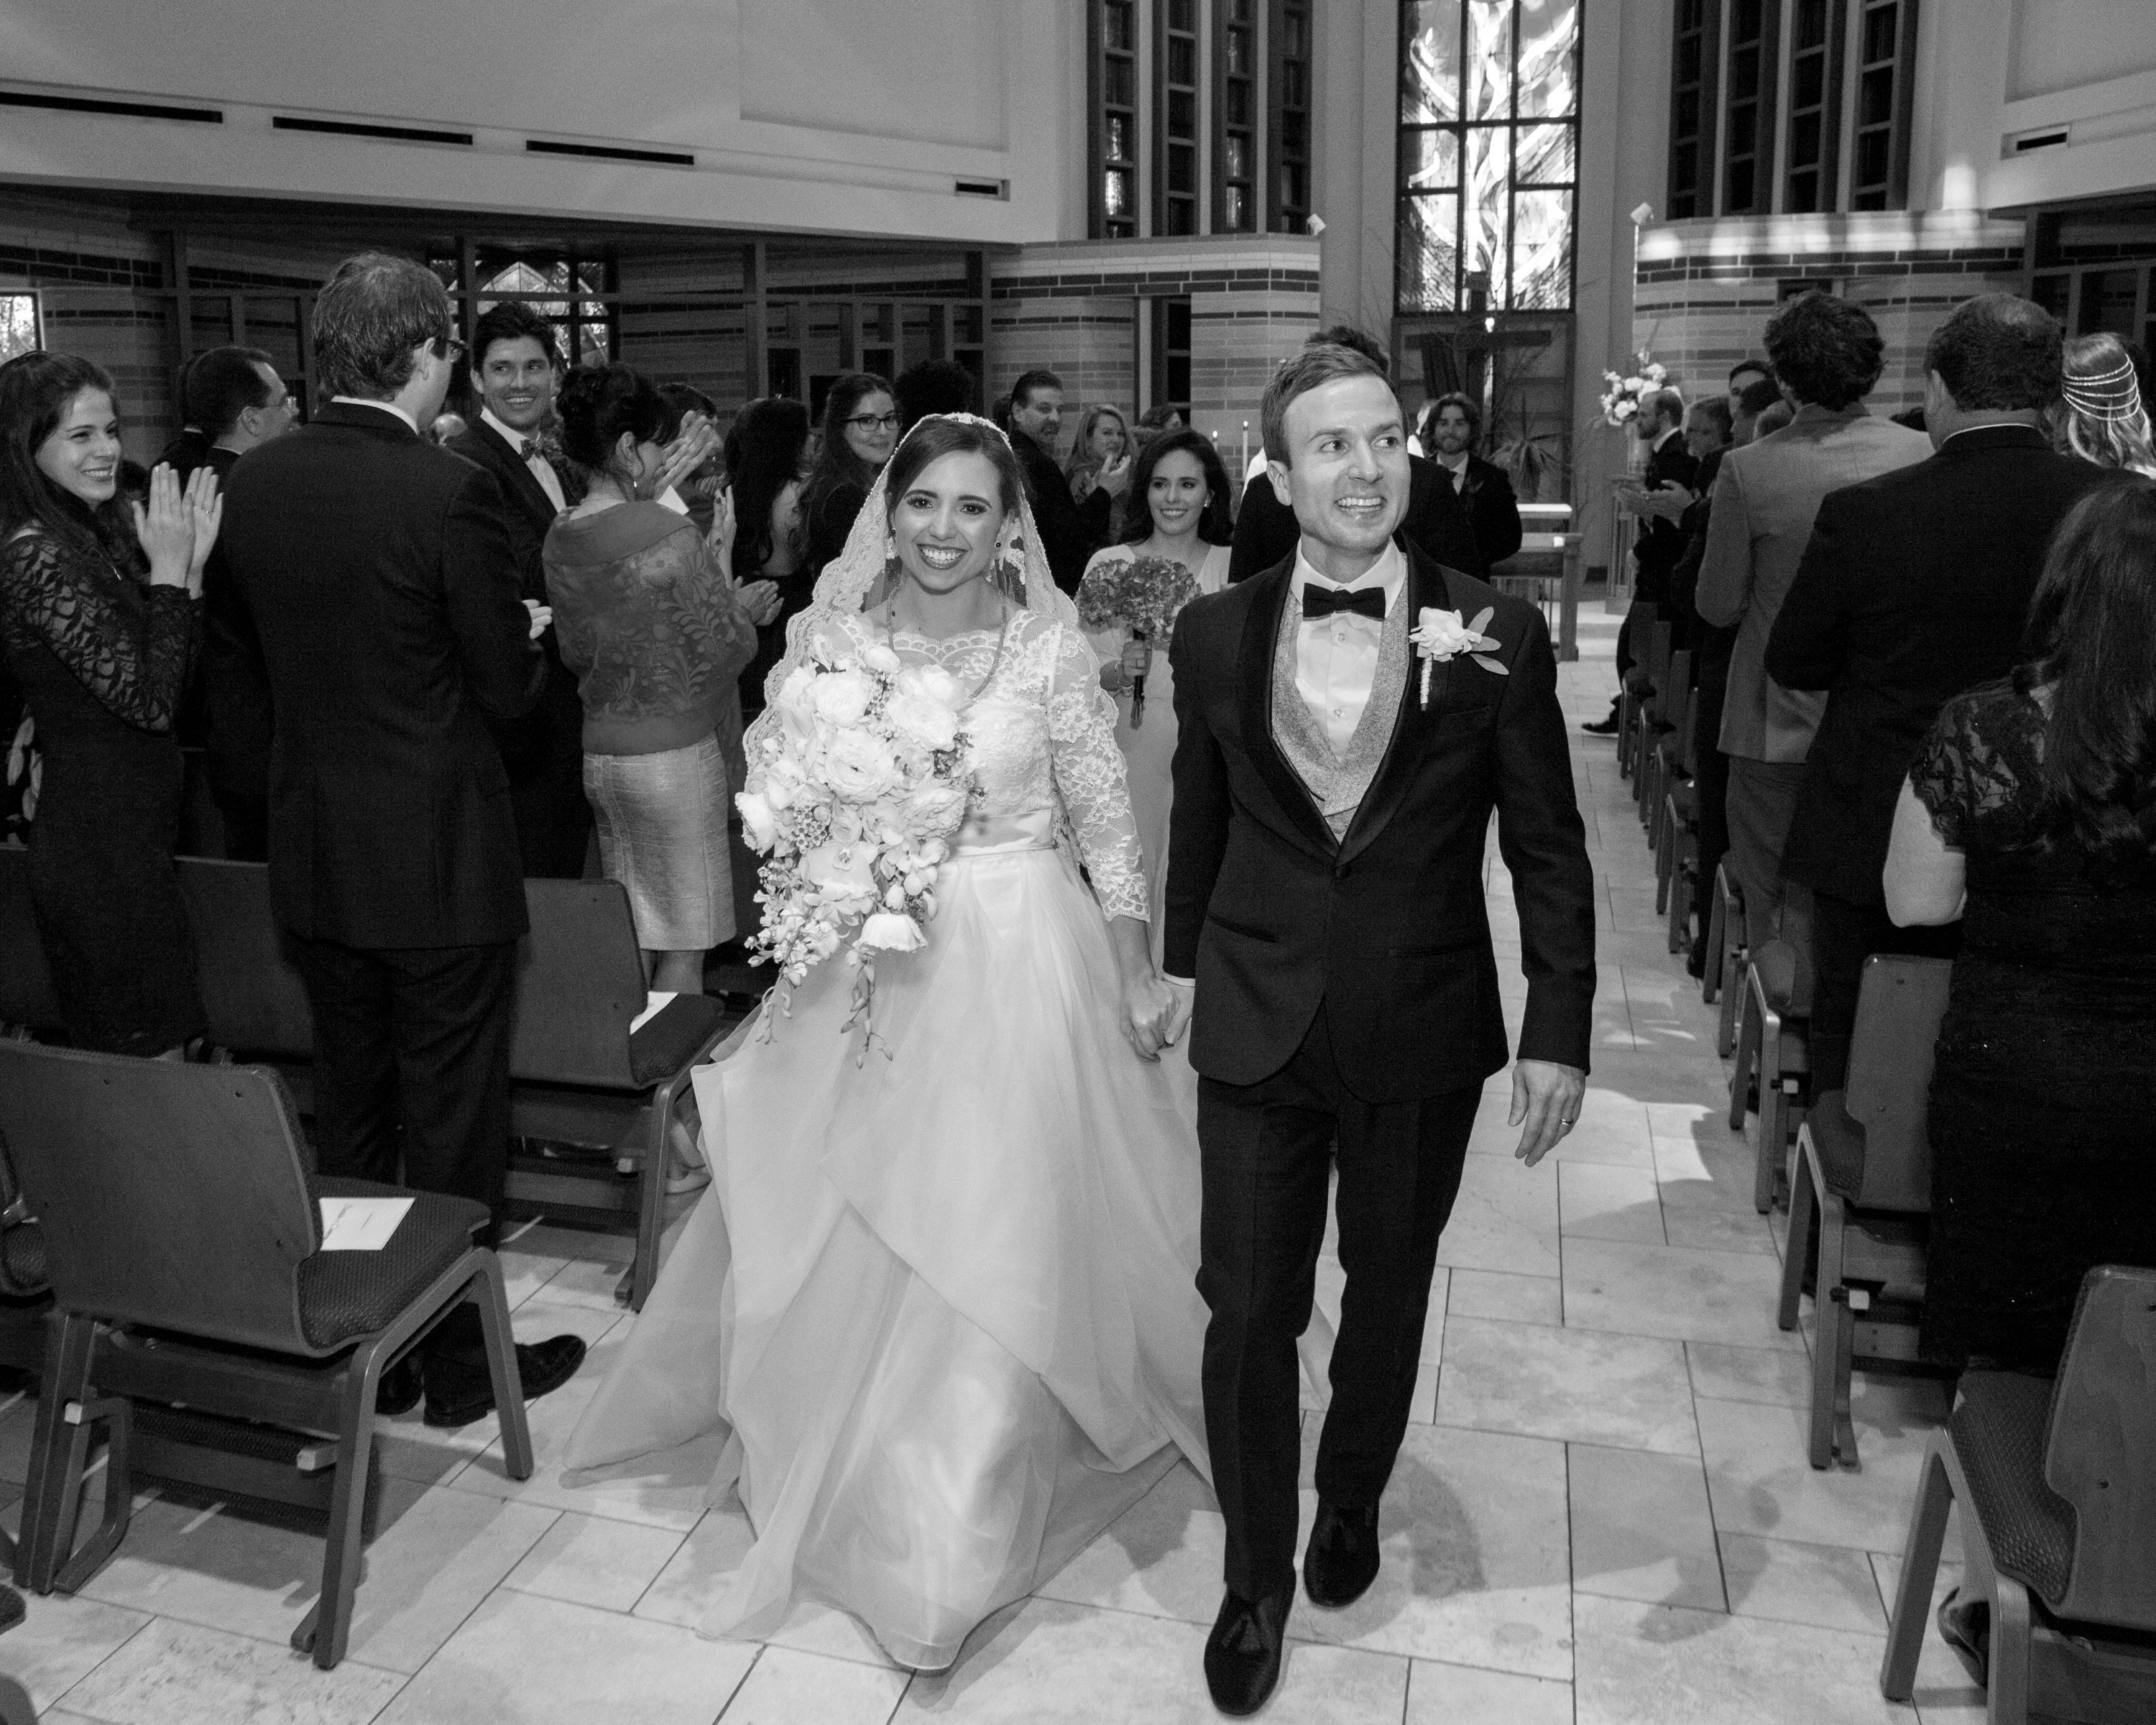 (Sean Scanlin // http://www.seanchristopherweddings.com)